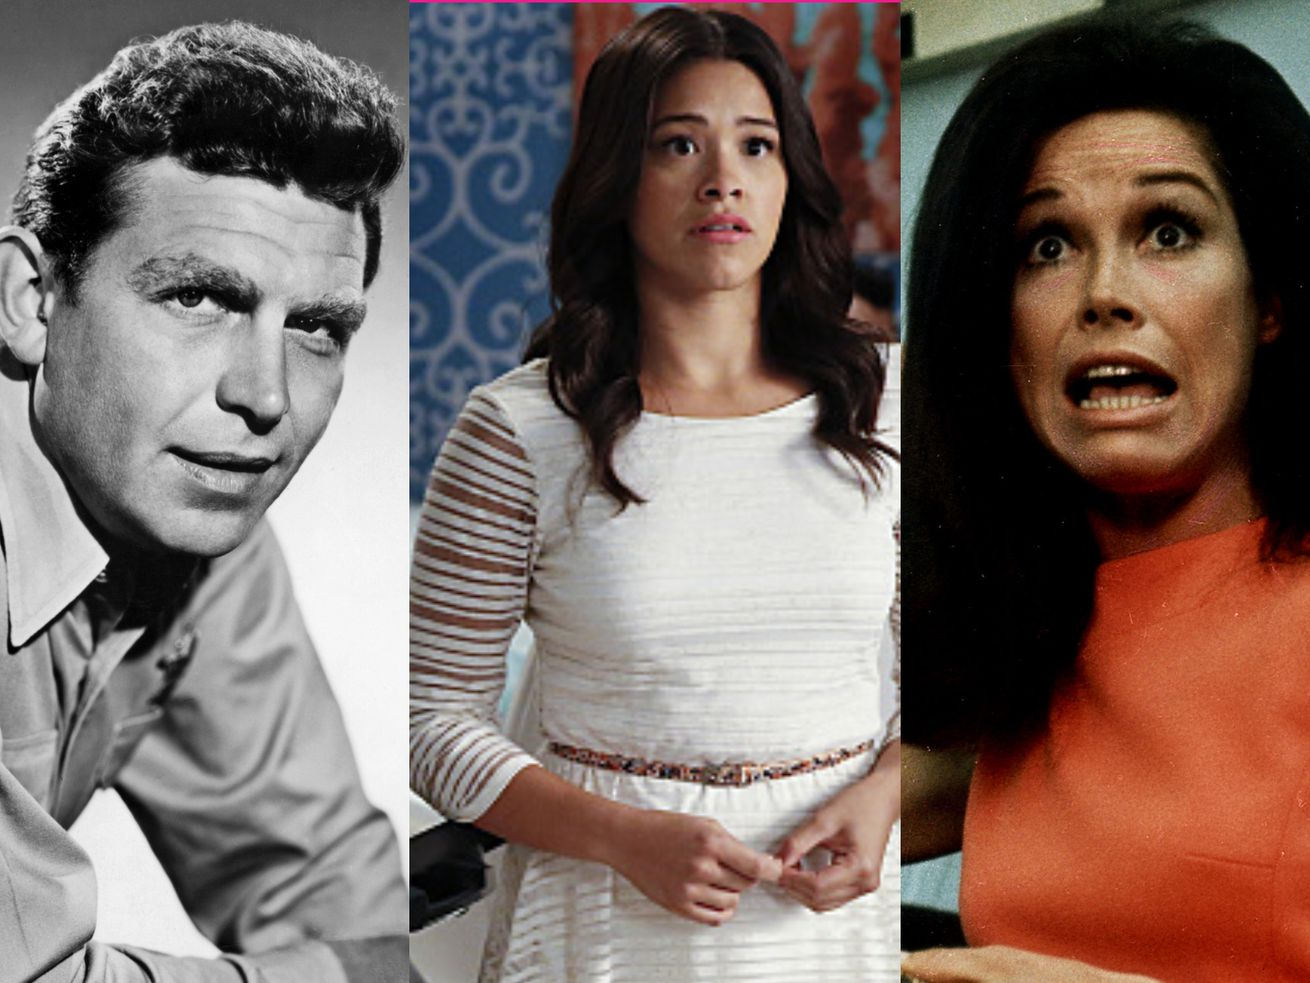 Andy Griffith plays Andy Taylor, Gina Rodriguez plays Jane Villaneuva, and Mary Tyler Moore plays Mary Richards.